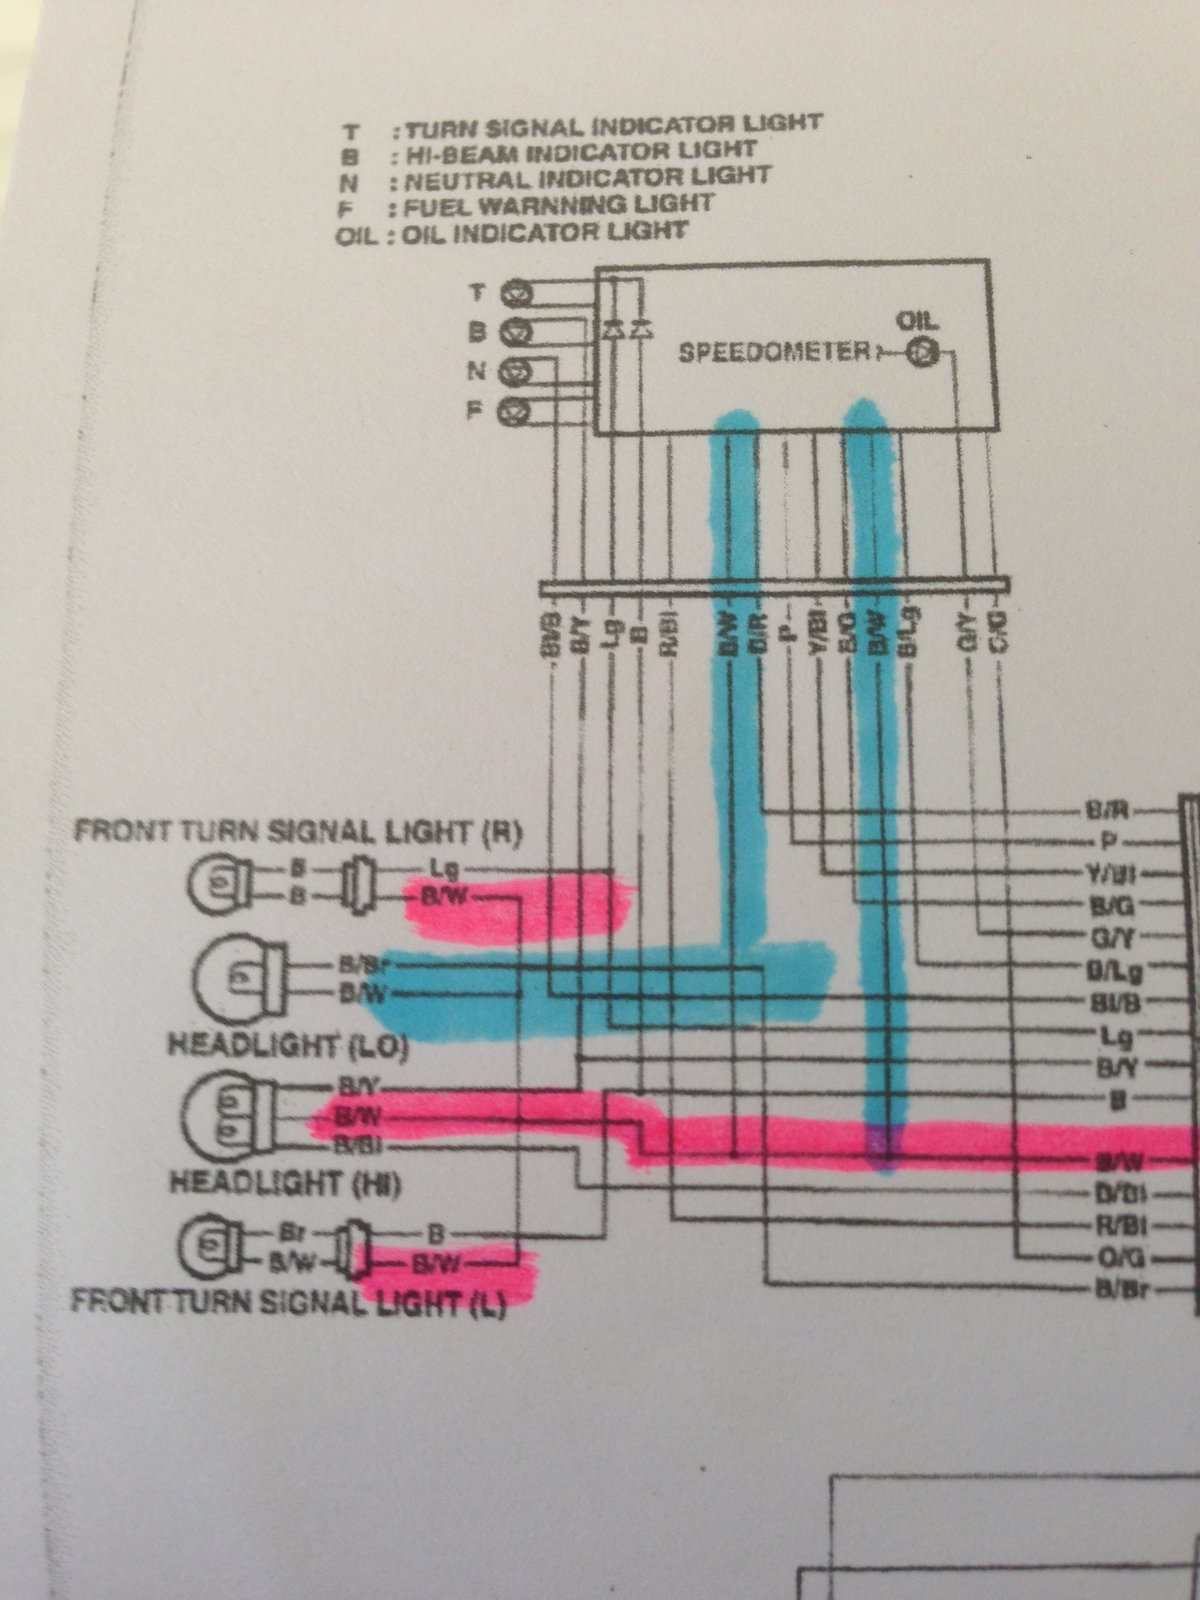 Wiring Harness Diagram 2001 Gsxr 750 Library For 2007 05 600 Headlight House Symbols U2022